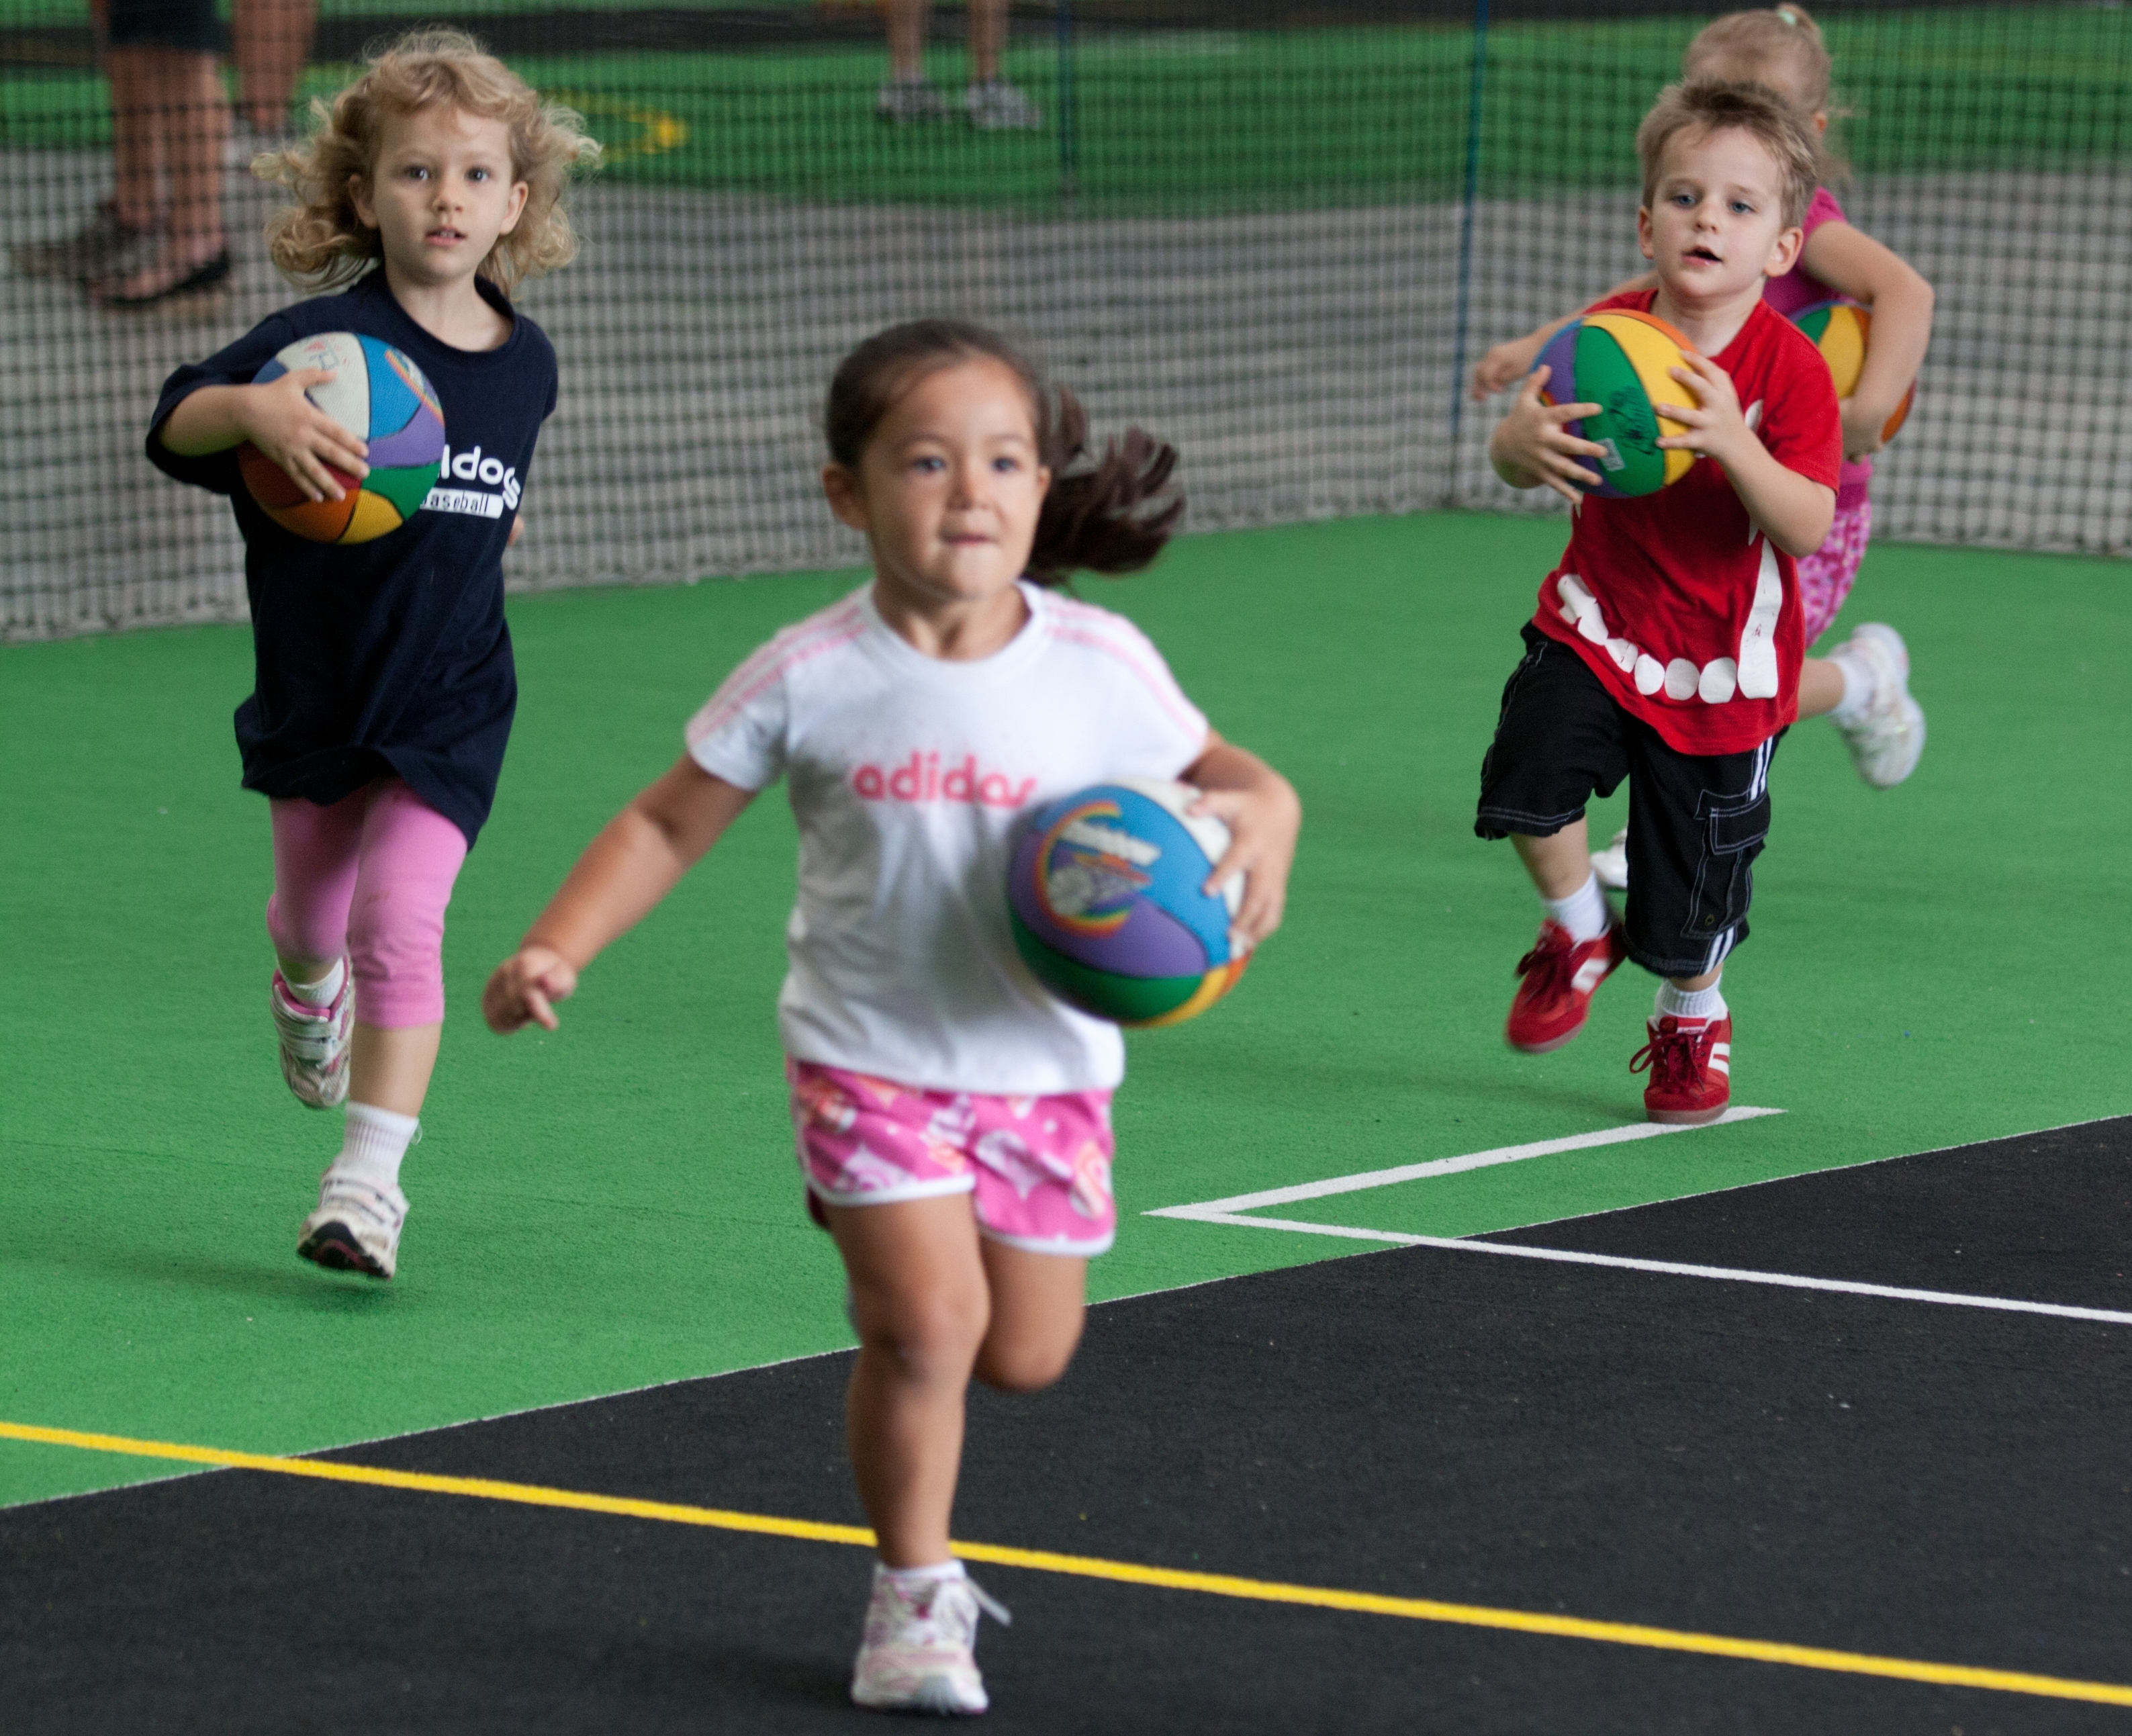 Choosing Sports For Kids 8 Ways Parents Can Help